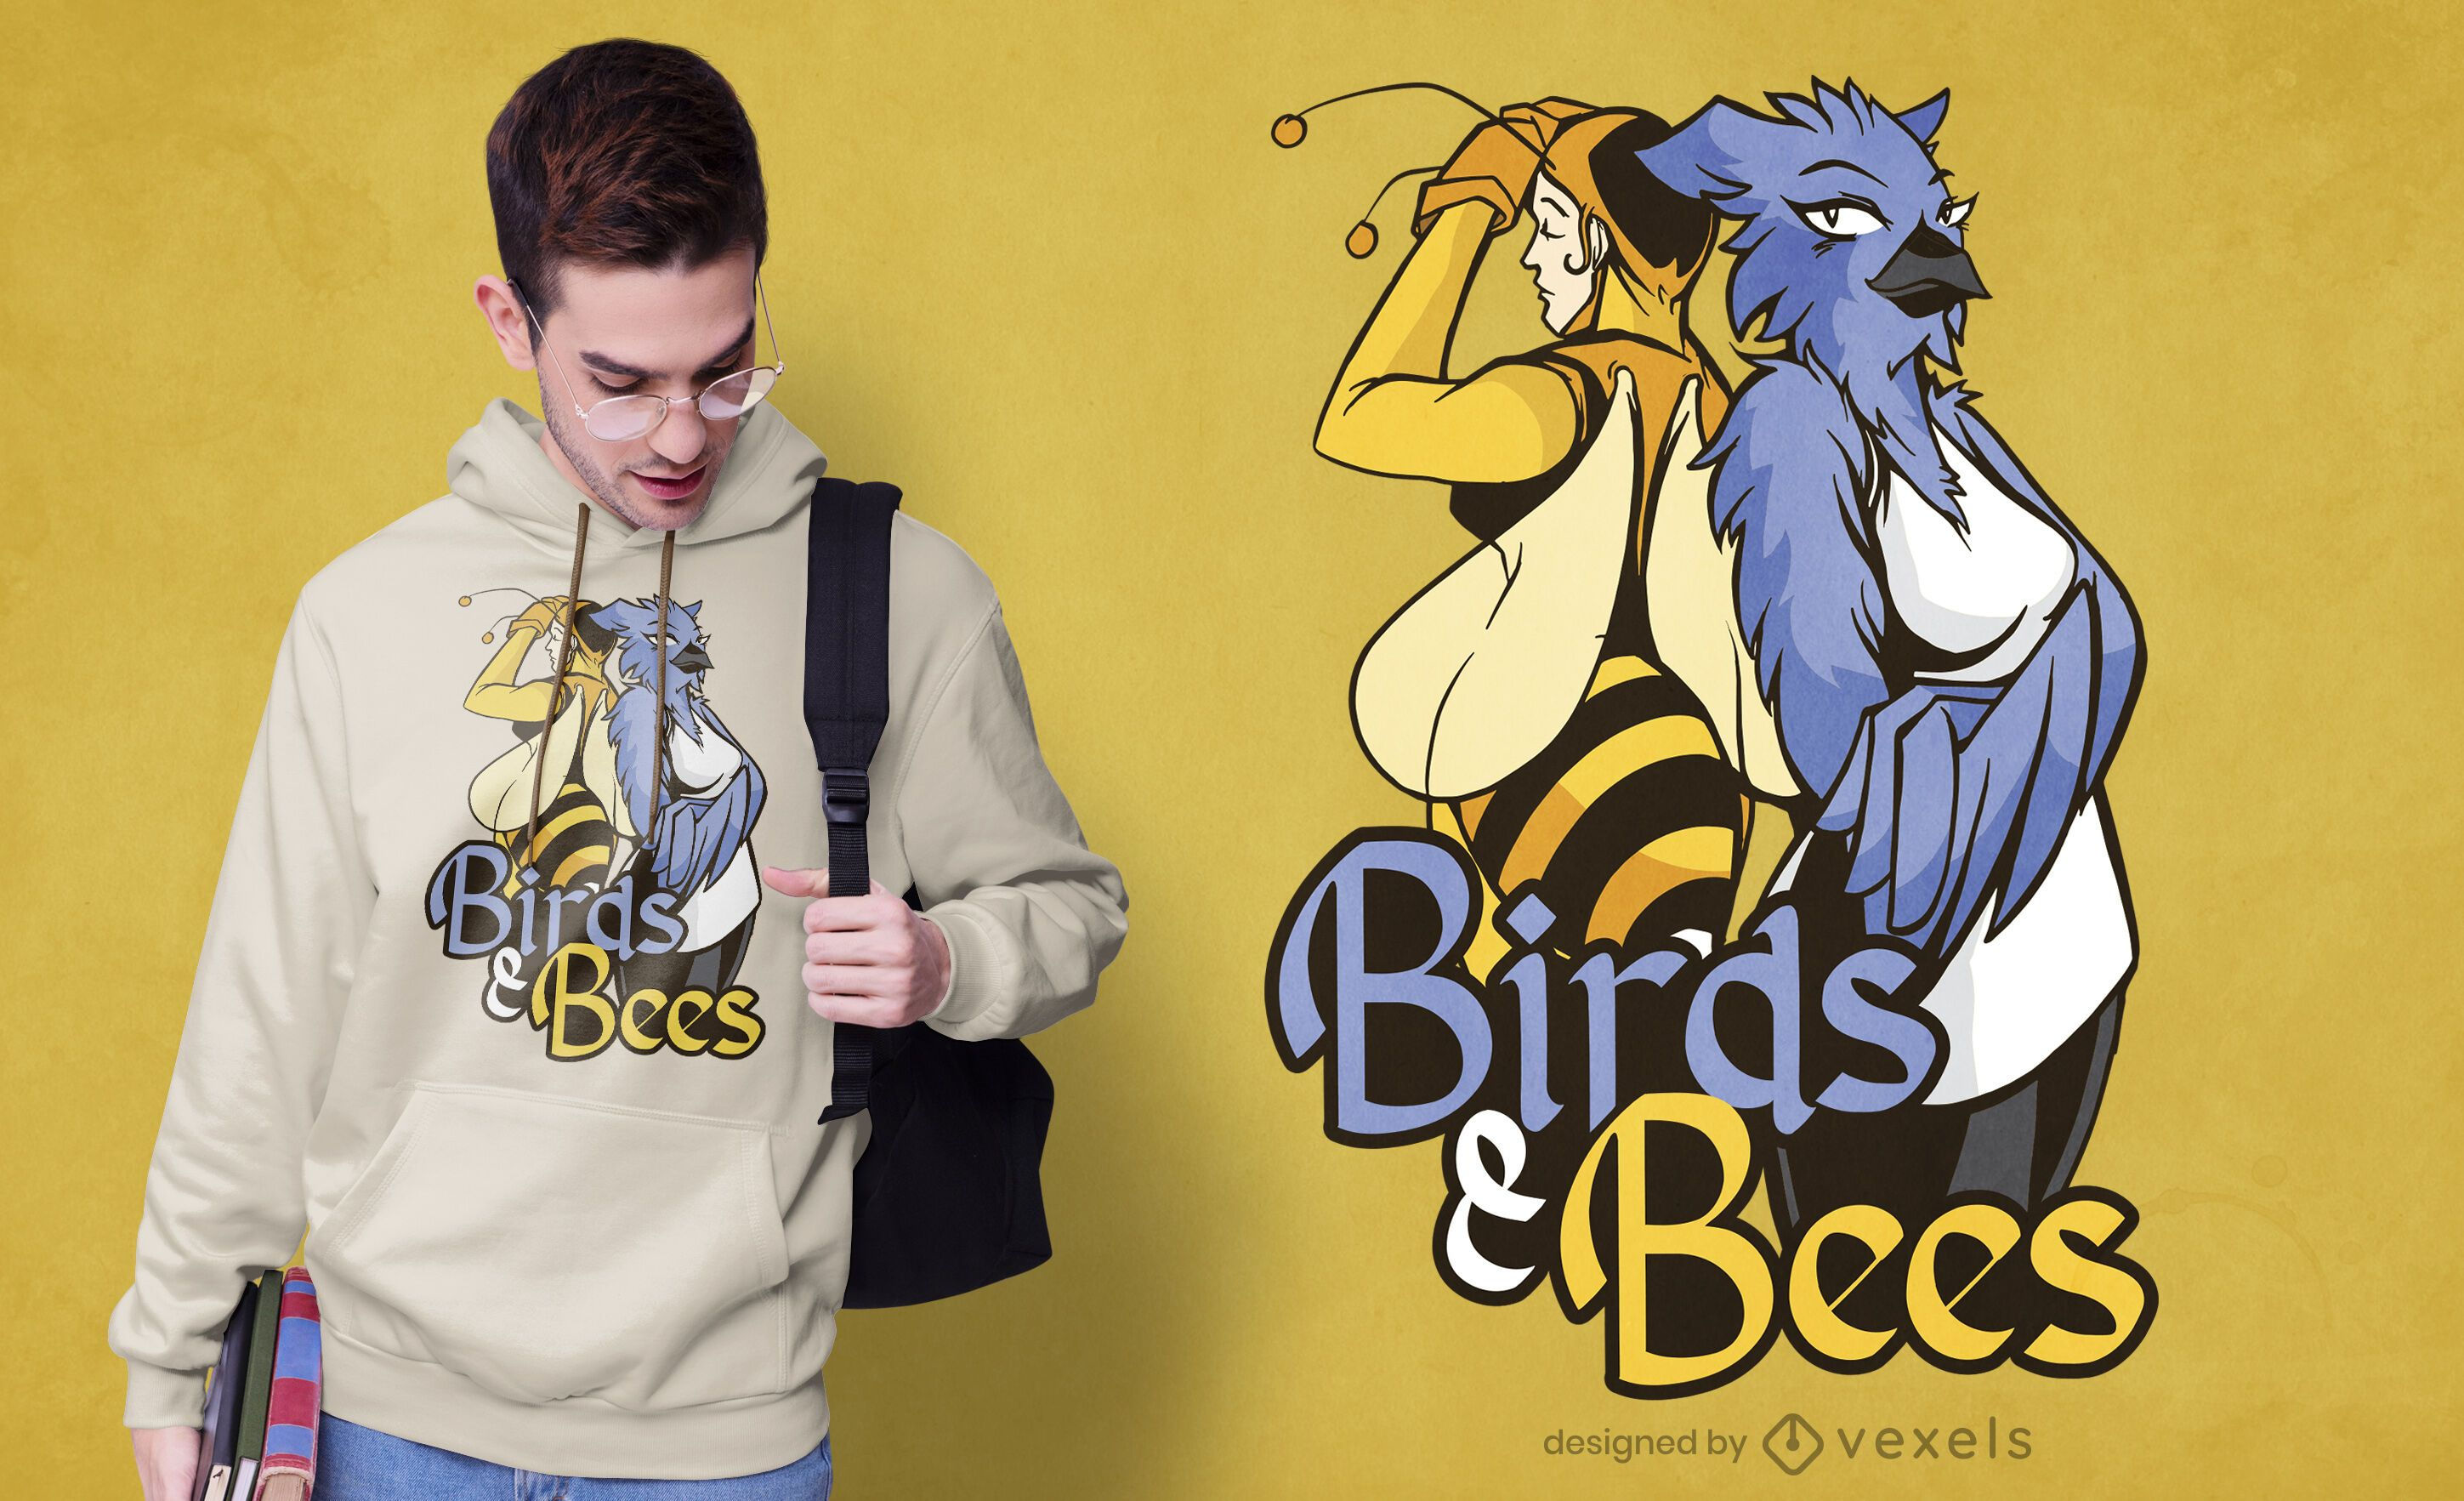 Birds and bees t-shirt design